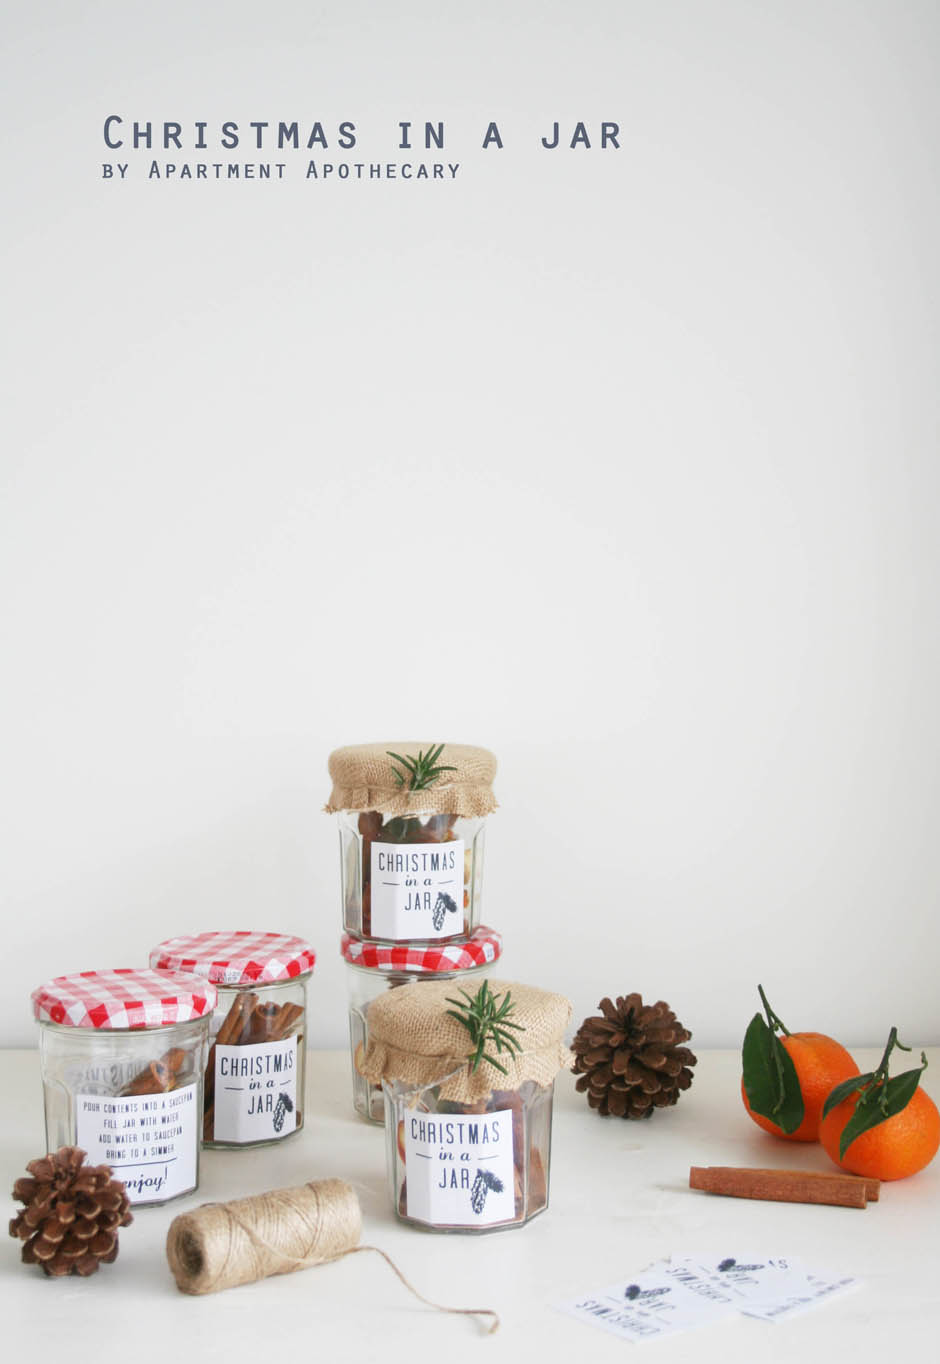 Christmas in a jar | Homemade Christmas present | Apartment Apothecary